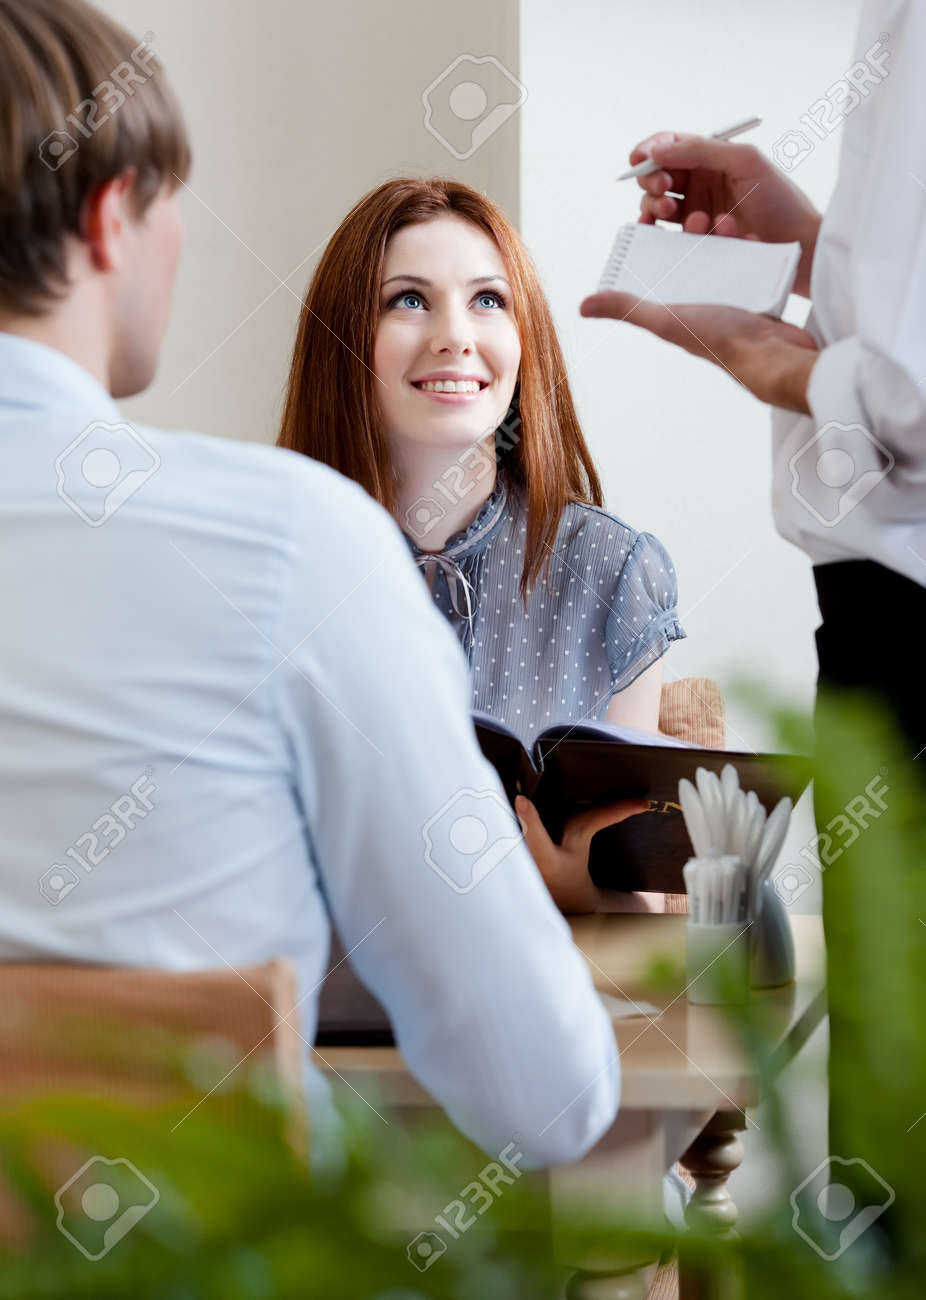 Pair makes the order to the waiter at the cafe Stock Photo - 15044387